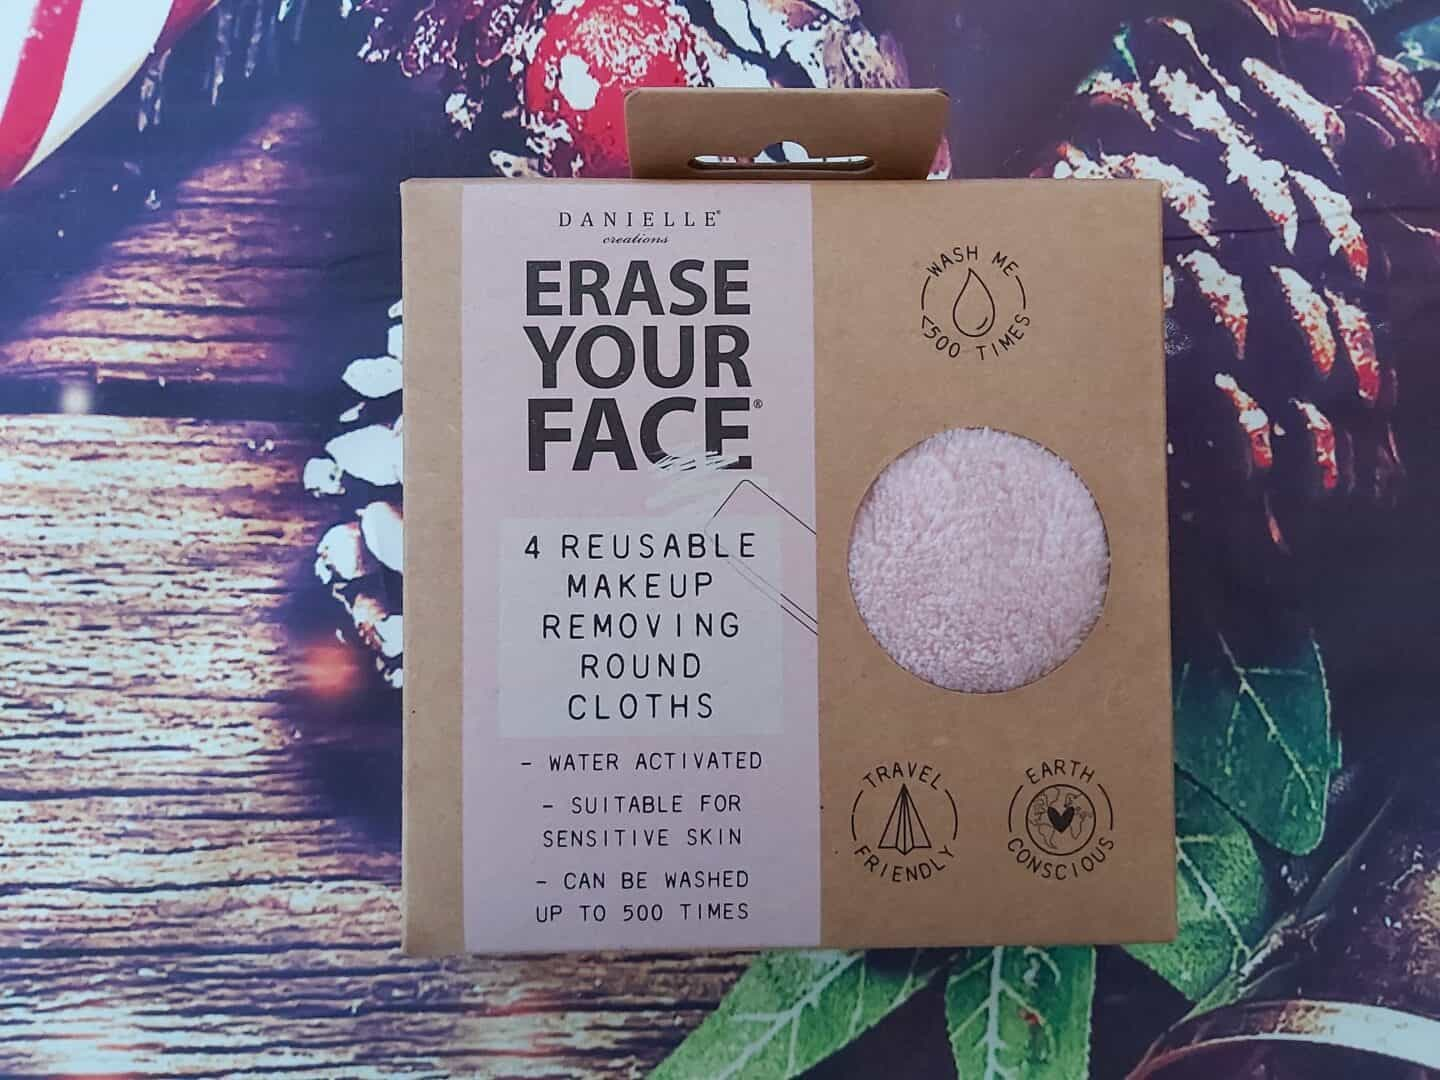 Reusable make up wipes in cardboard box on Christmas background